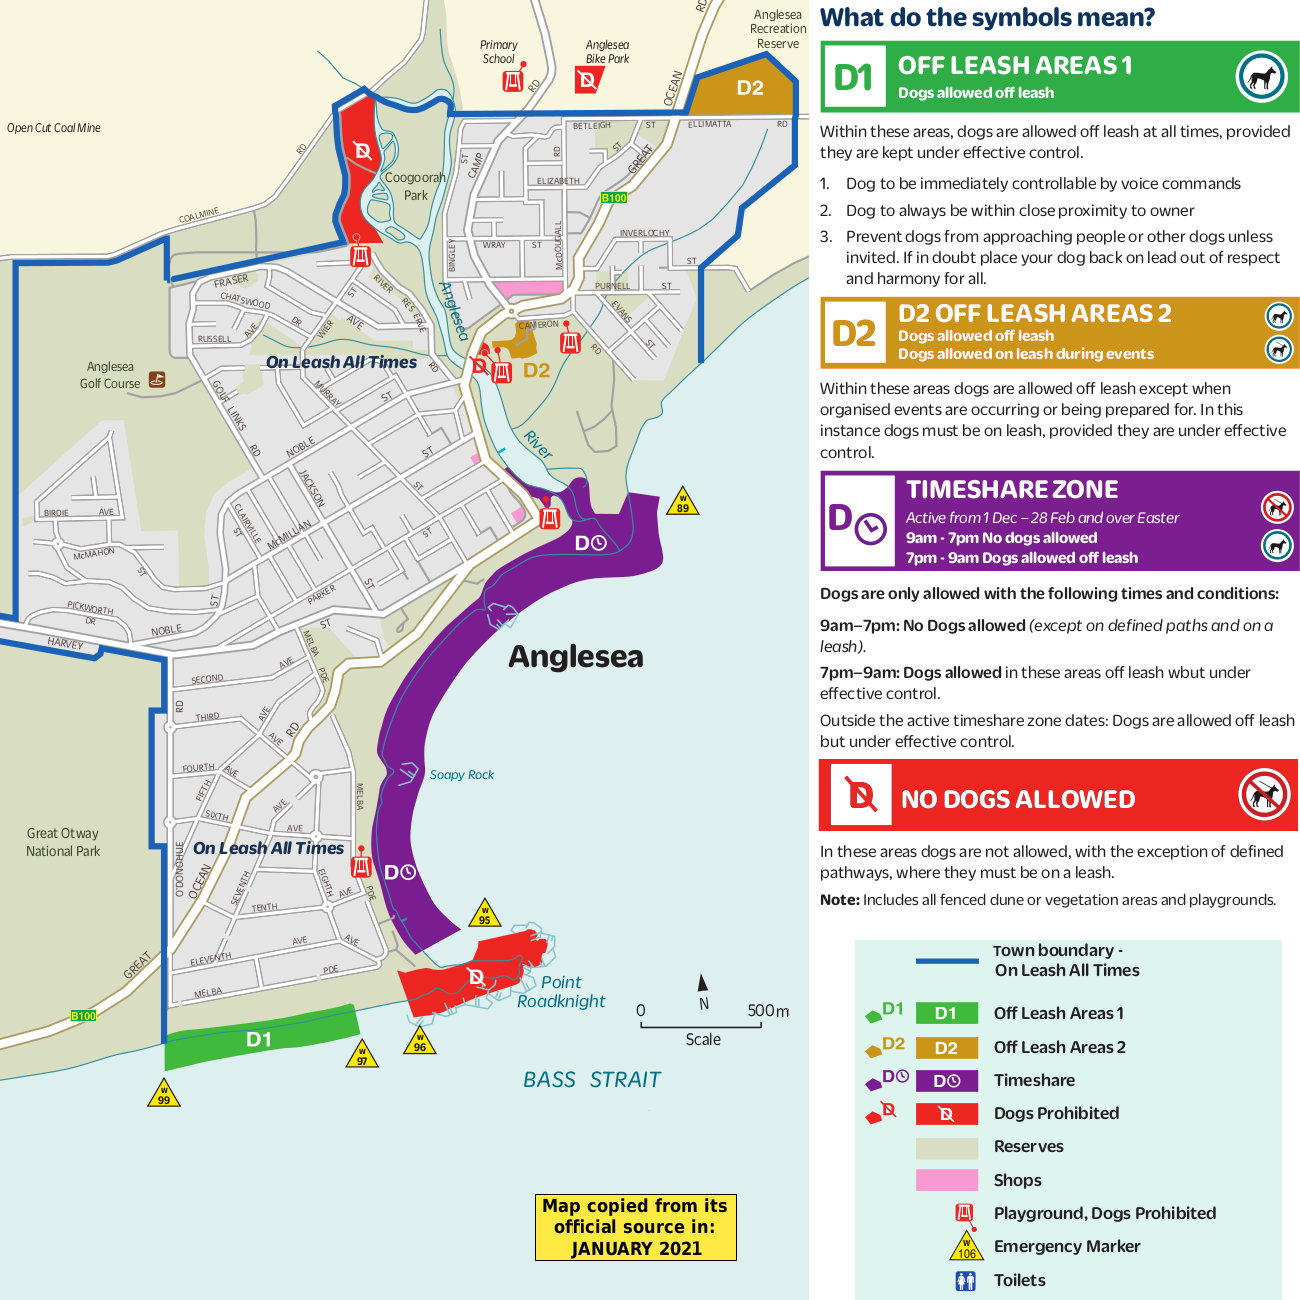 Anglesea dog beach map